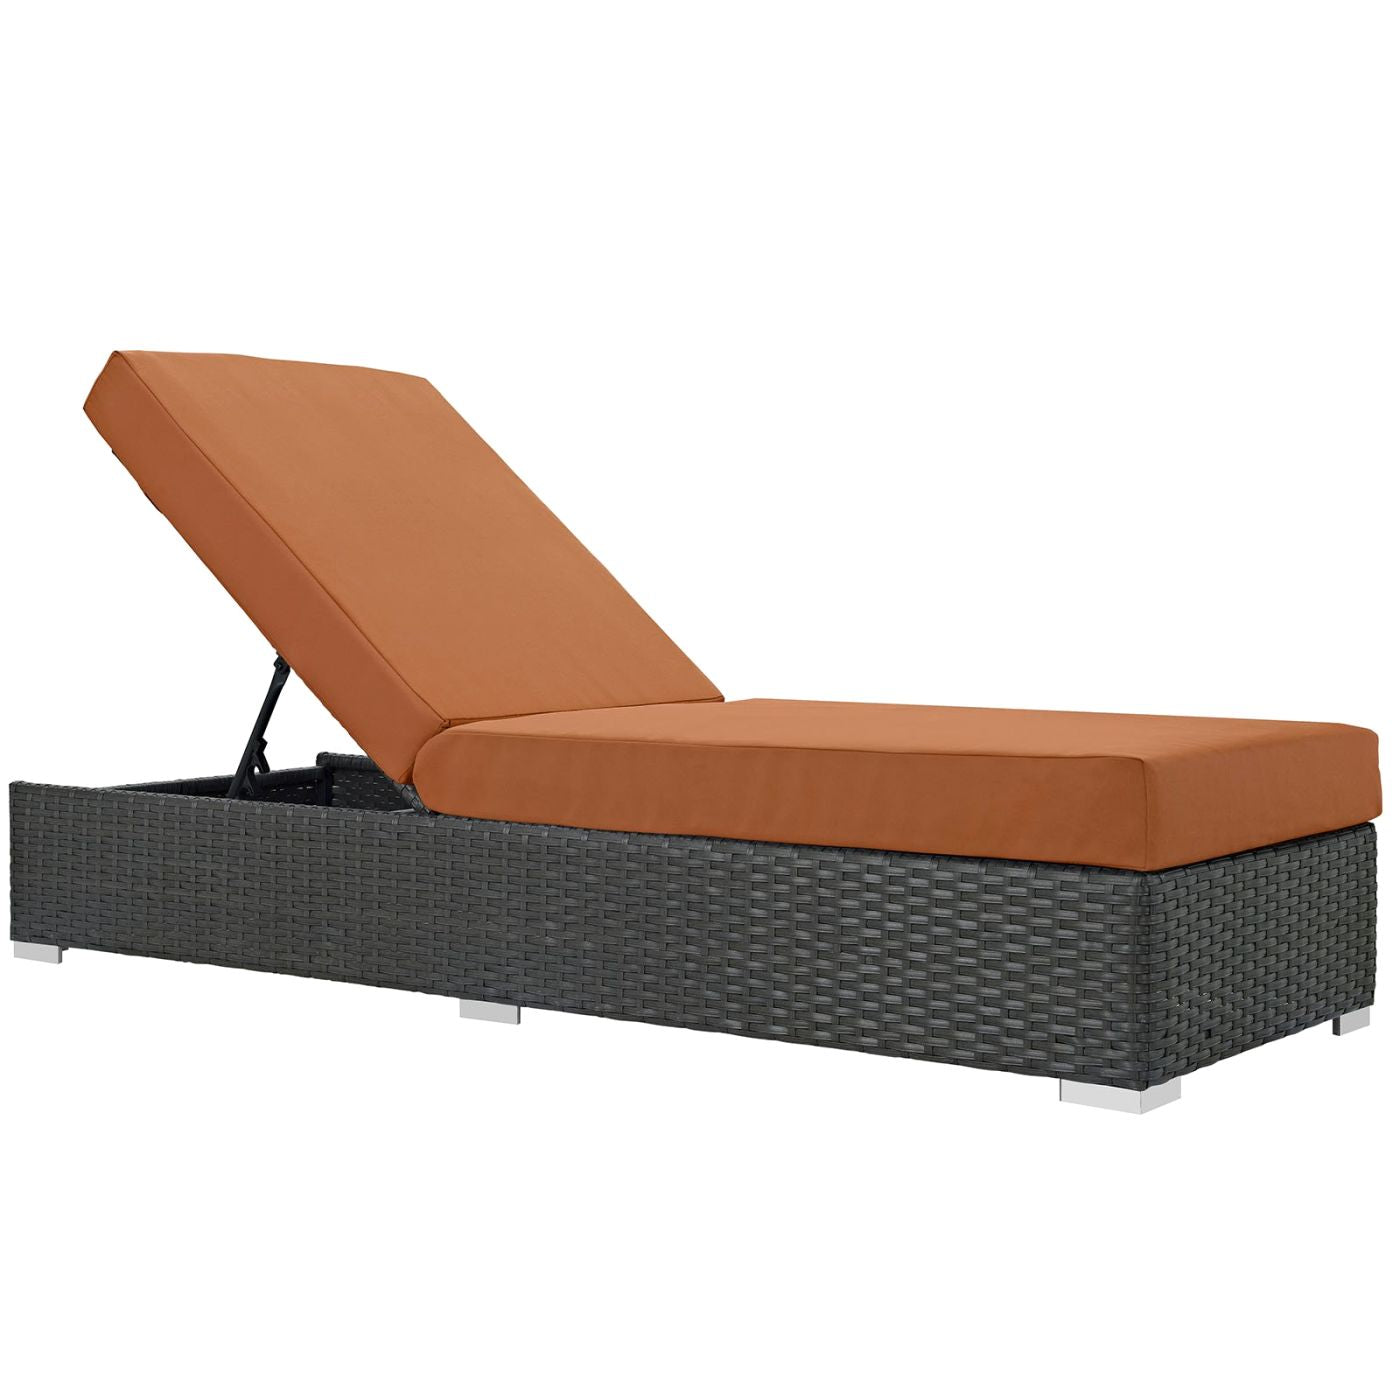 Magnificent Modway Outdoor Lounge Chairs On Sale Eei 1862 Chc Tus Sojourn Outdoor Patio Rattan Sunbrella Chaise Lounge Only Only 739 55 At Contemporary Alphanode Cool Chair Designs And Ideas Alphanodeonline